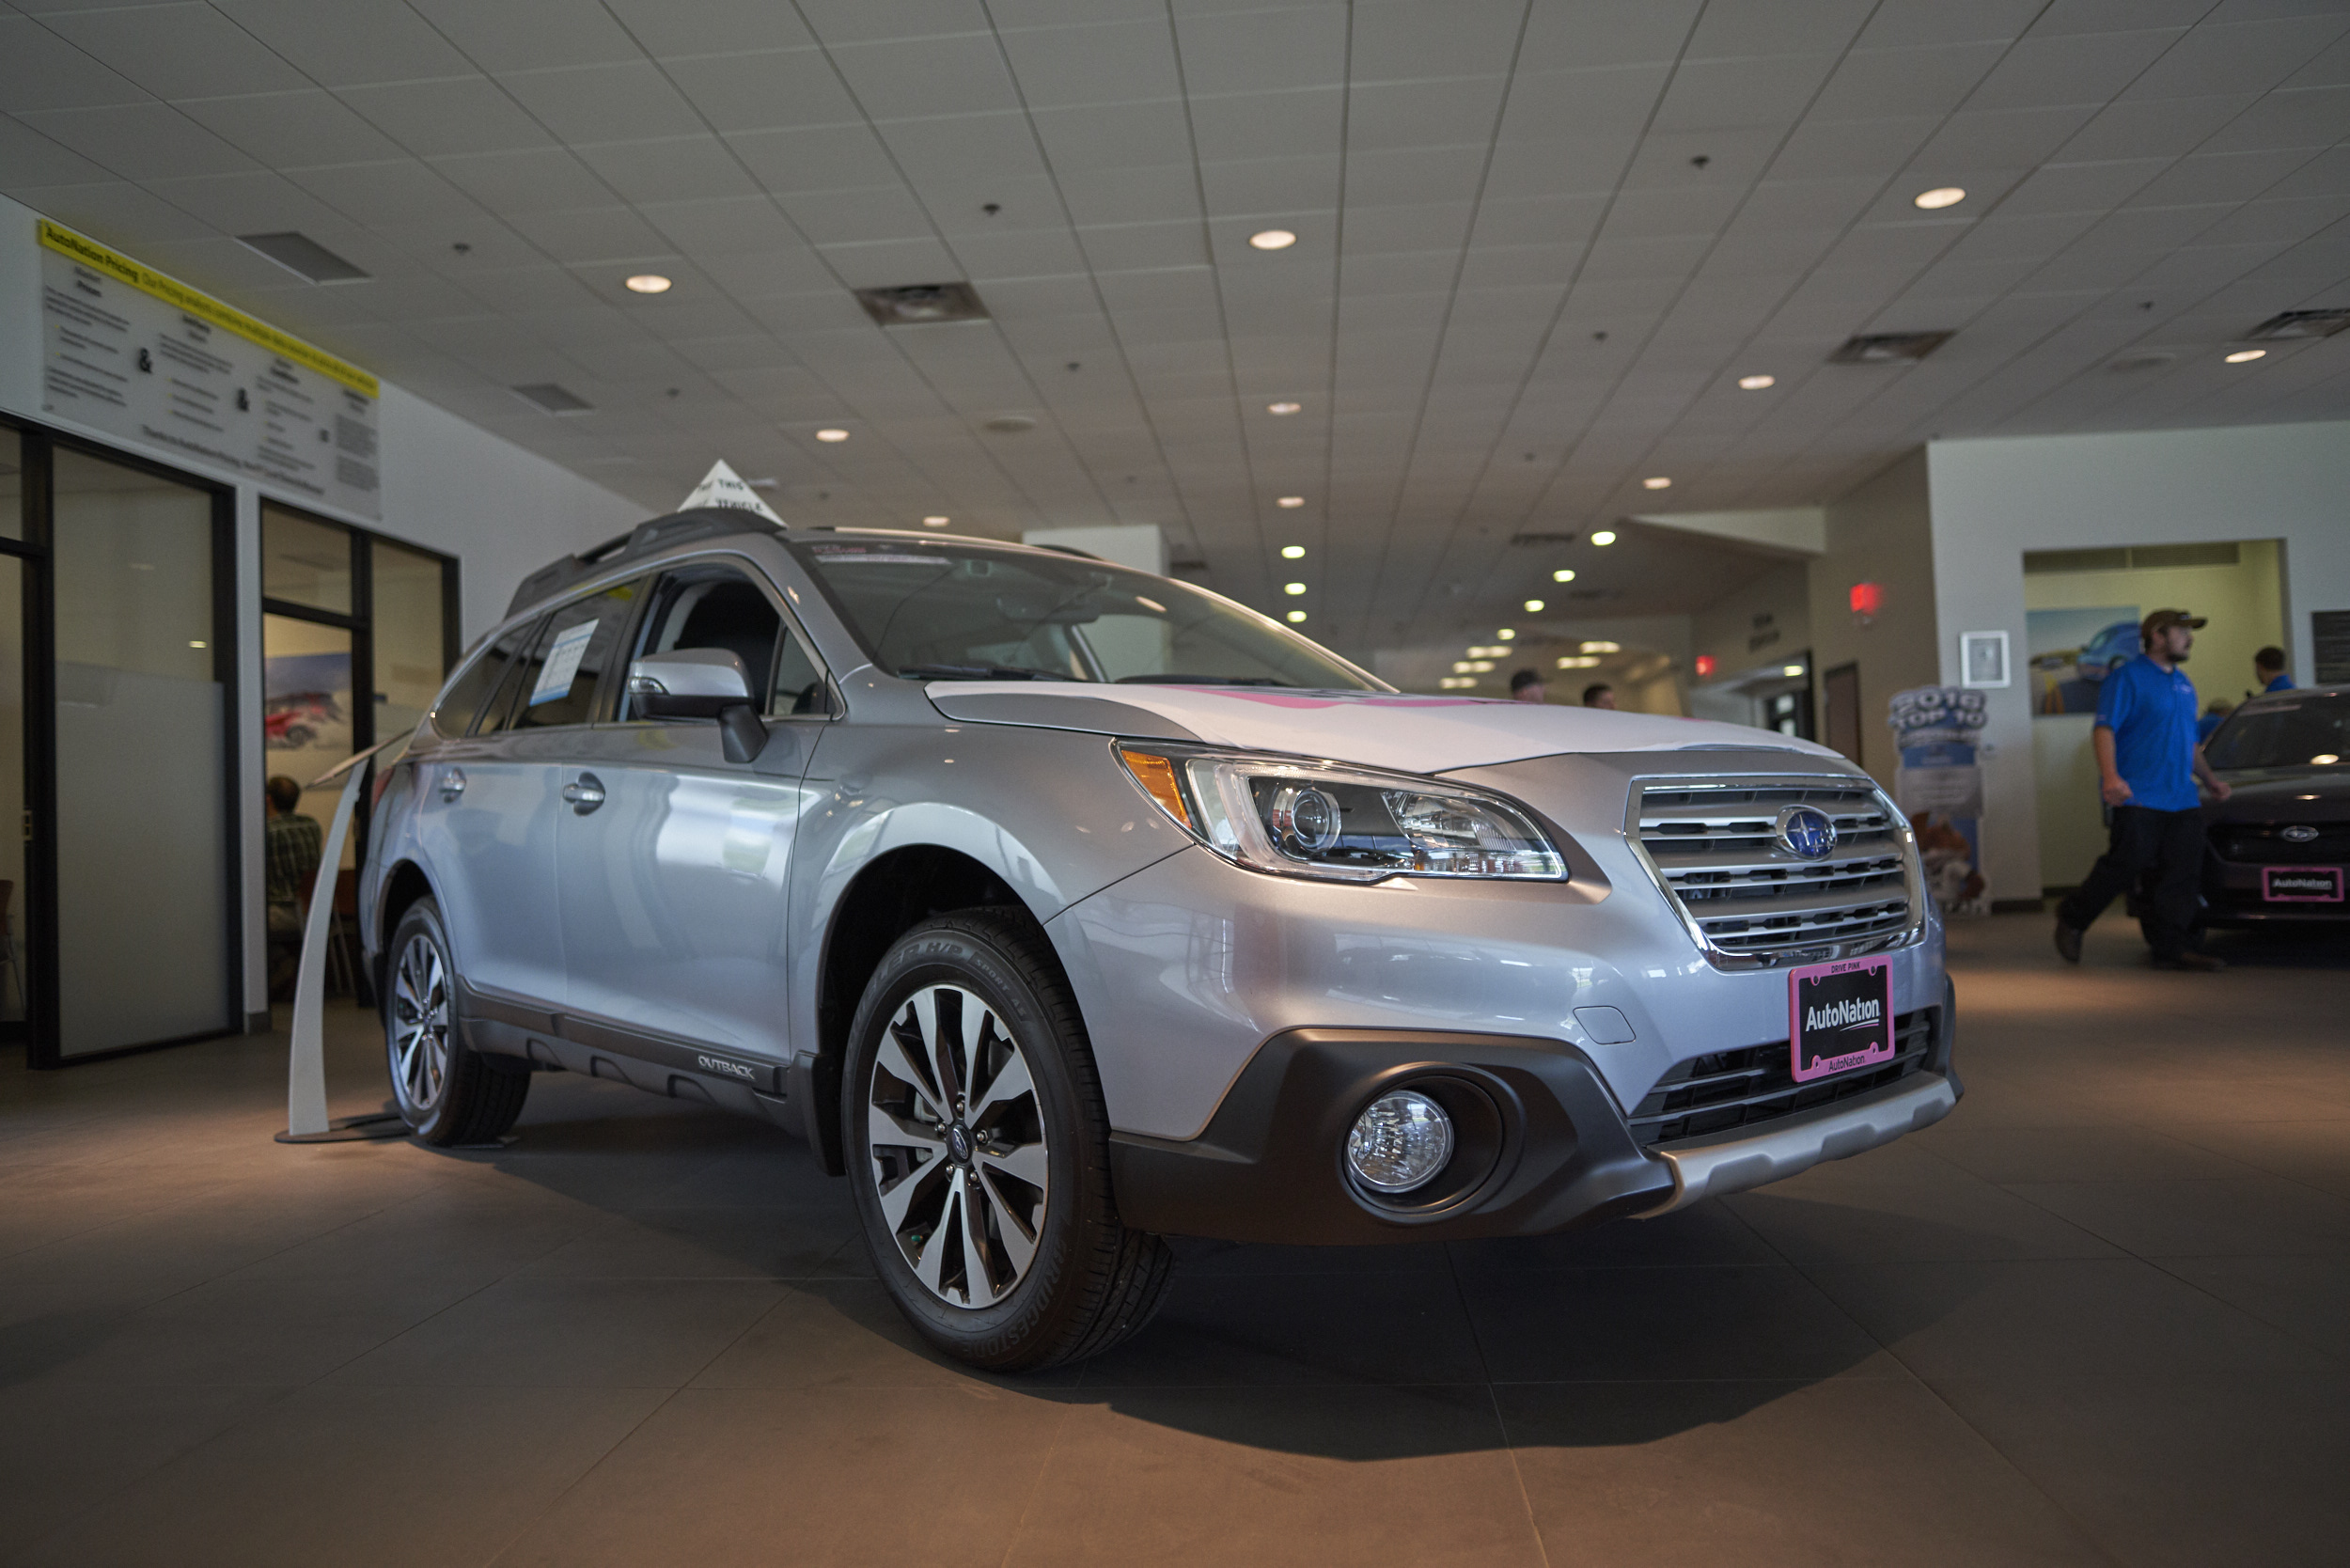 our dealership is designed to ac modate you through the whole car ing leasing and selling process autonation subaru arapahoe makes the experience